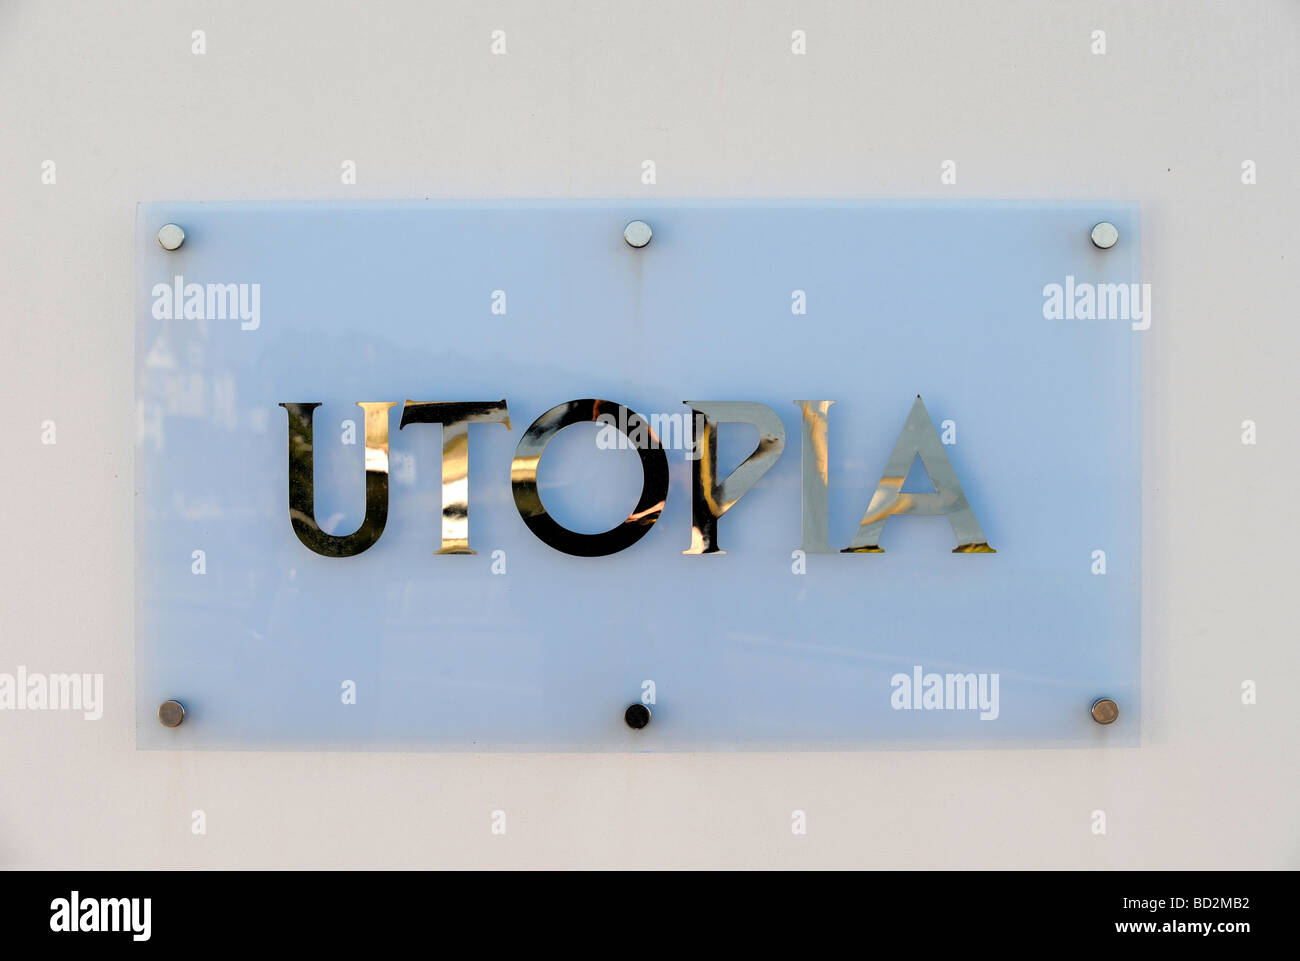 SIGN OUTSIDE A PROPERTY DEVELOPMENT CALLED UTOPIA ON SHORE ROAD NEAR SANDBANKS WITH A PRICE TAG OF OVER 3M FEB 2008 - Stock Image